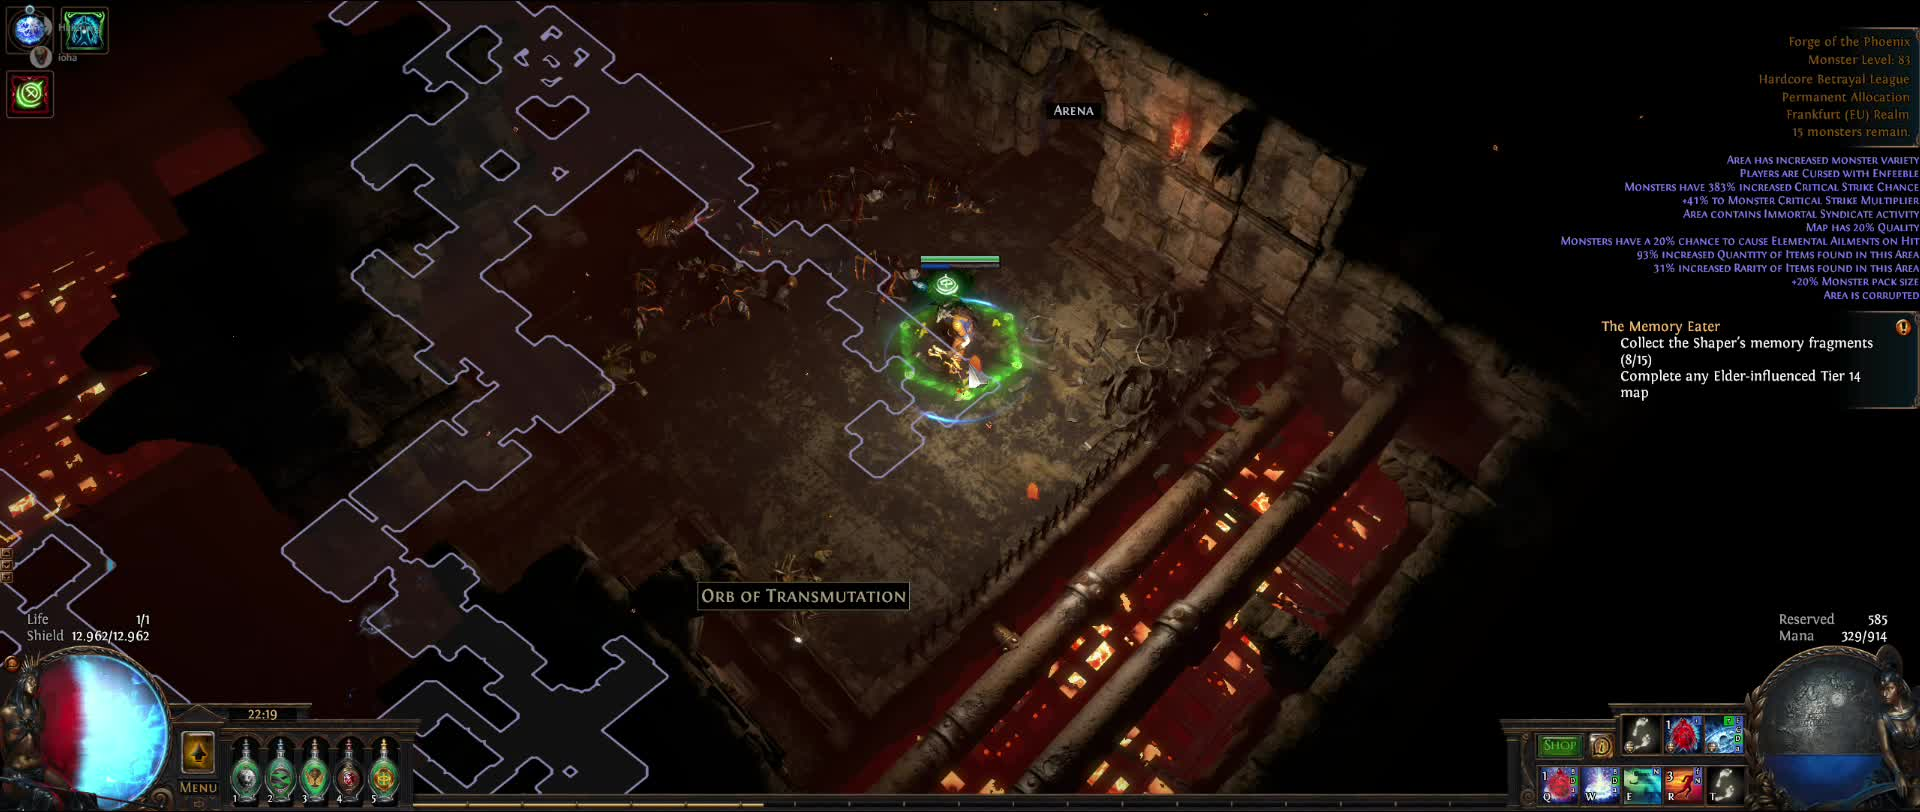 pathofexile, Replay 2019.02.03-22.20 GIFs